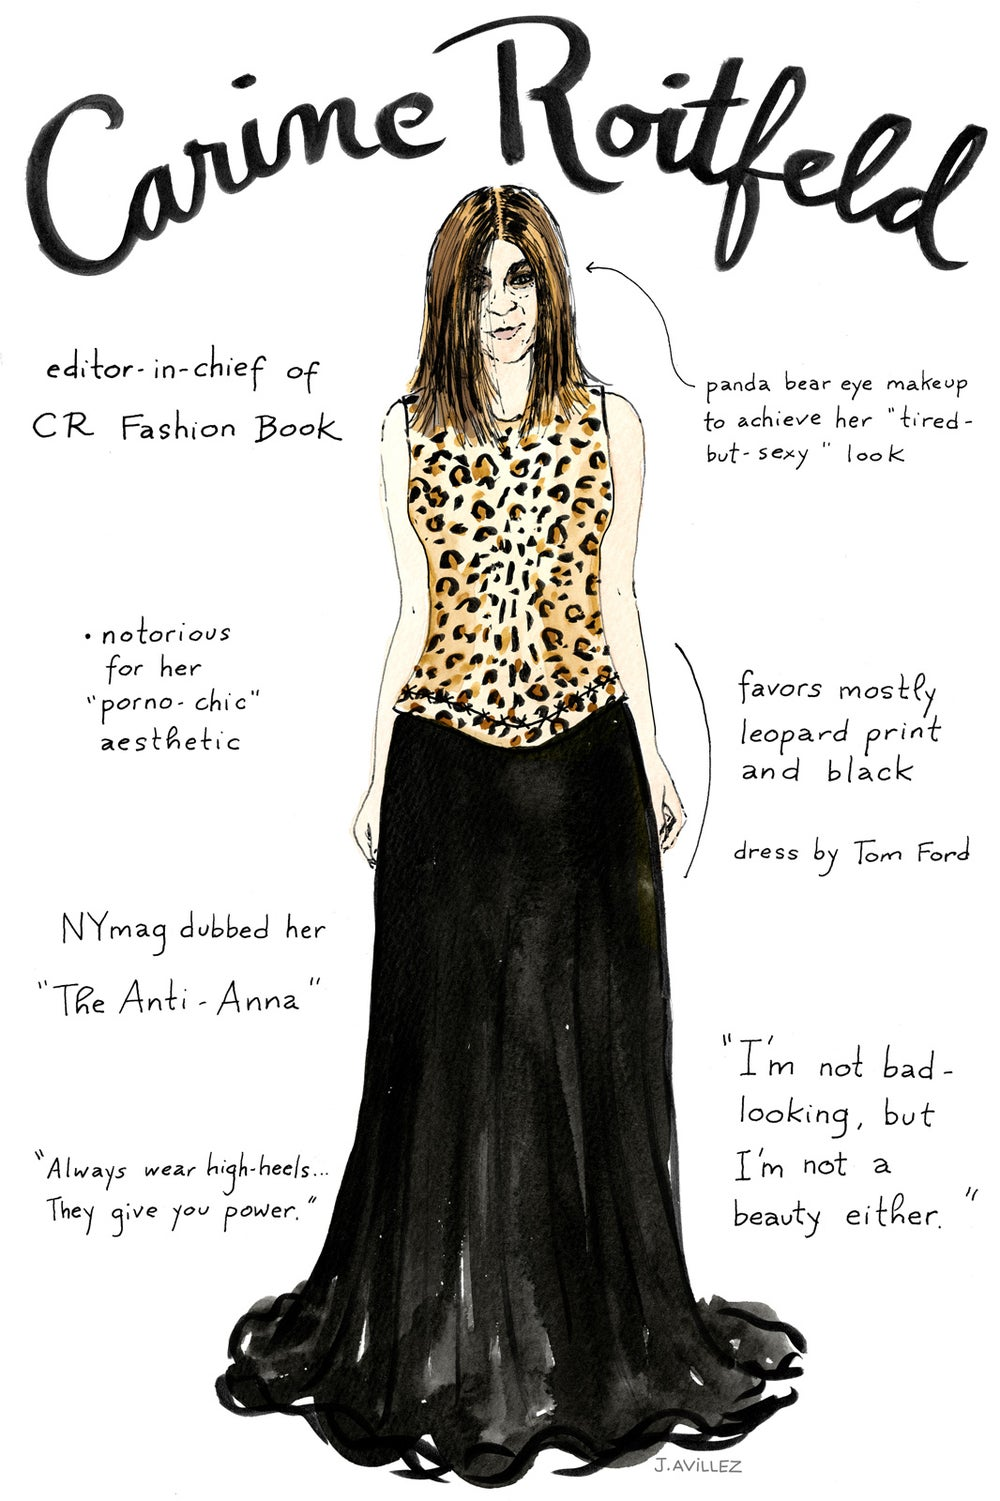 Carine Roitfeld — editor-in-chief